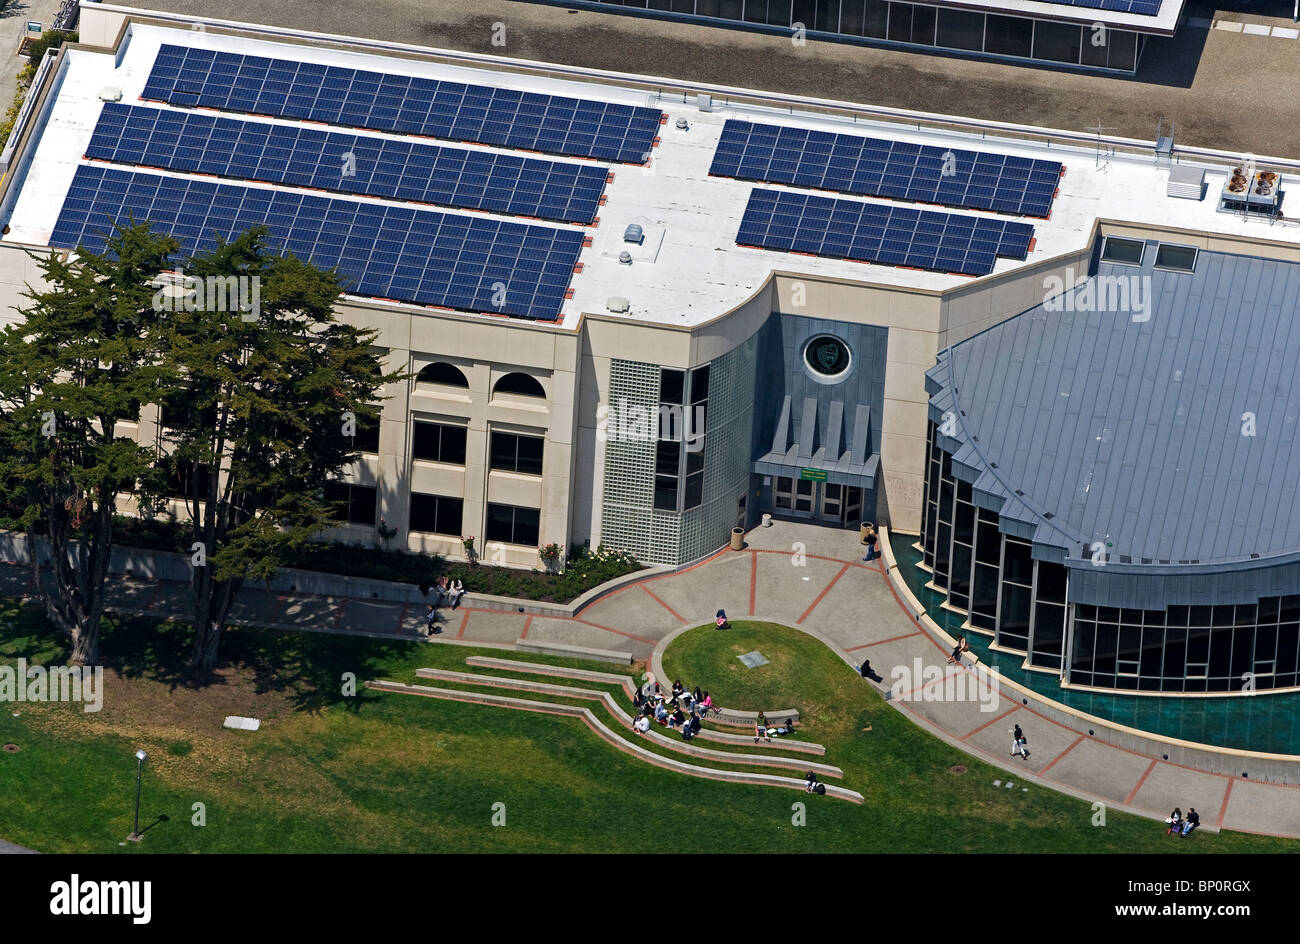 aerial view above solar panels installed on roof University of San Francisco - Stock Image